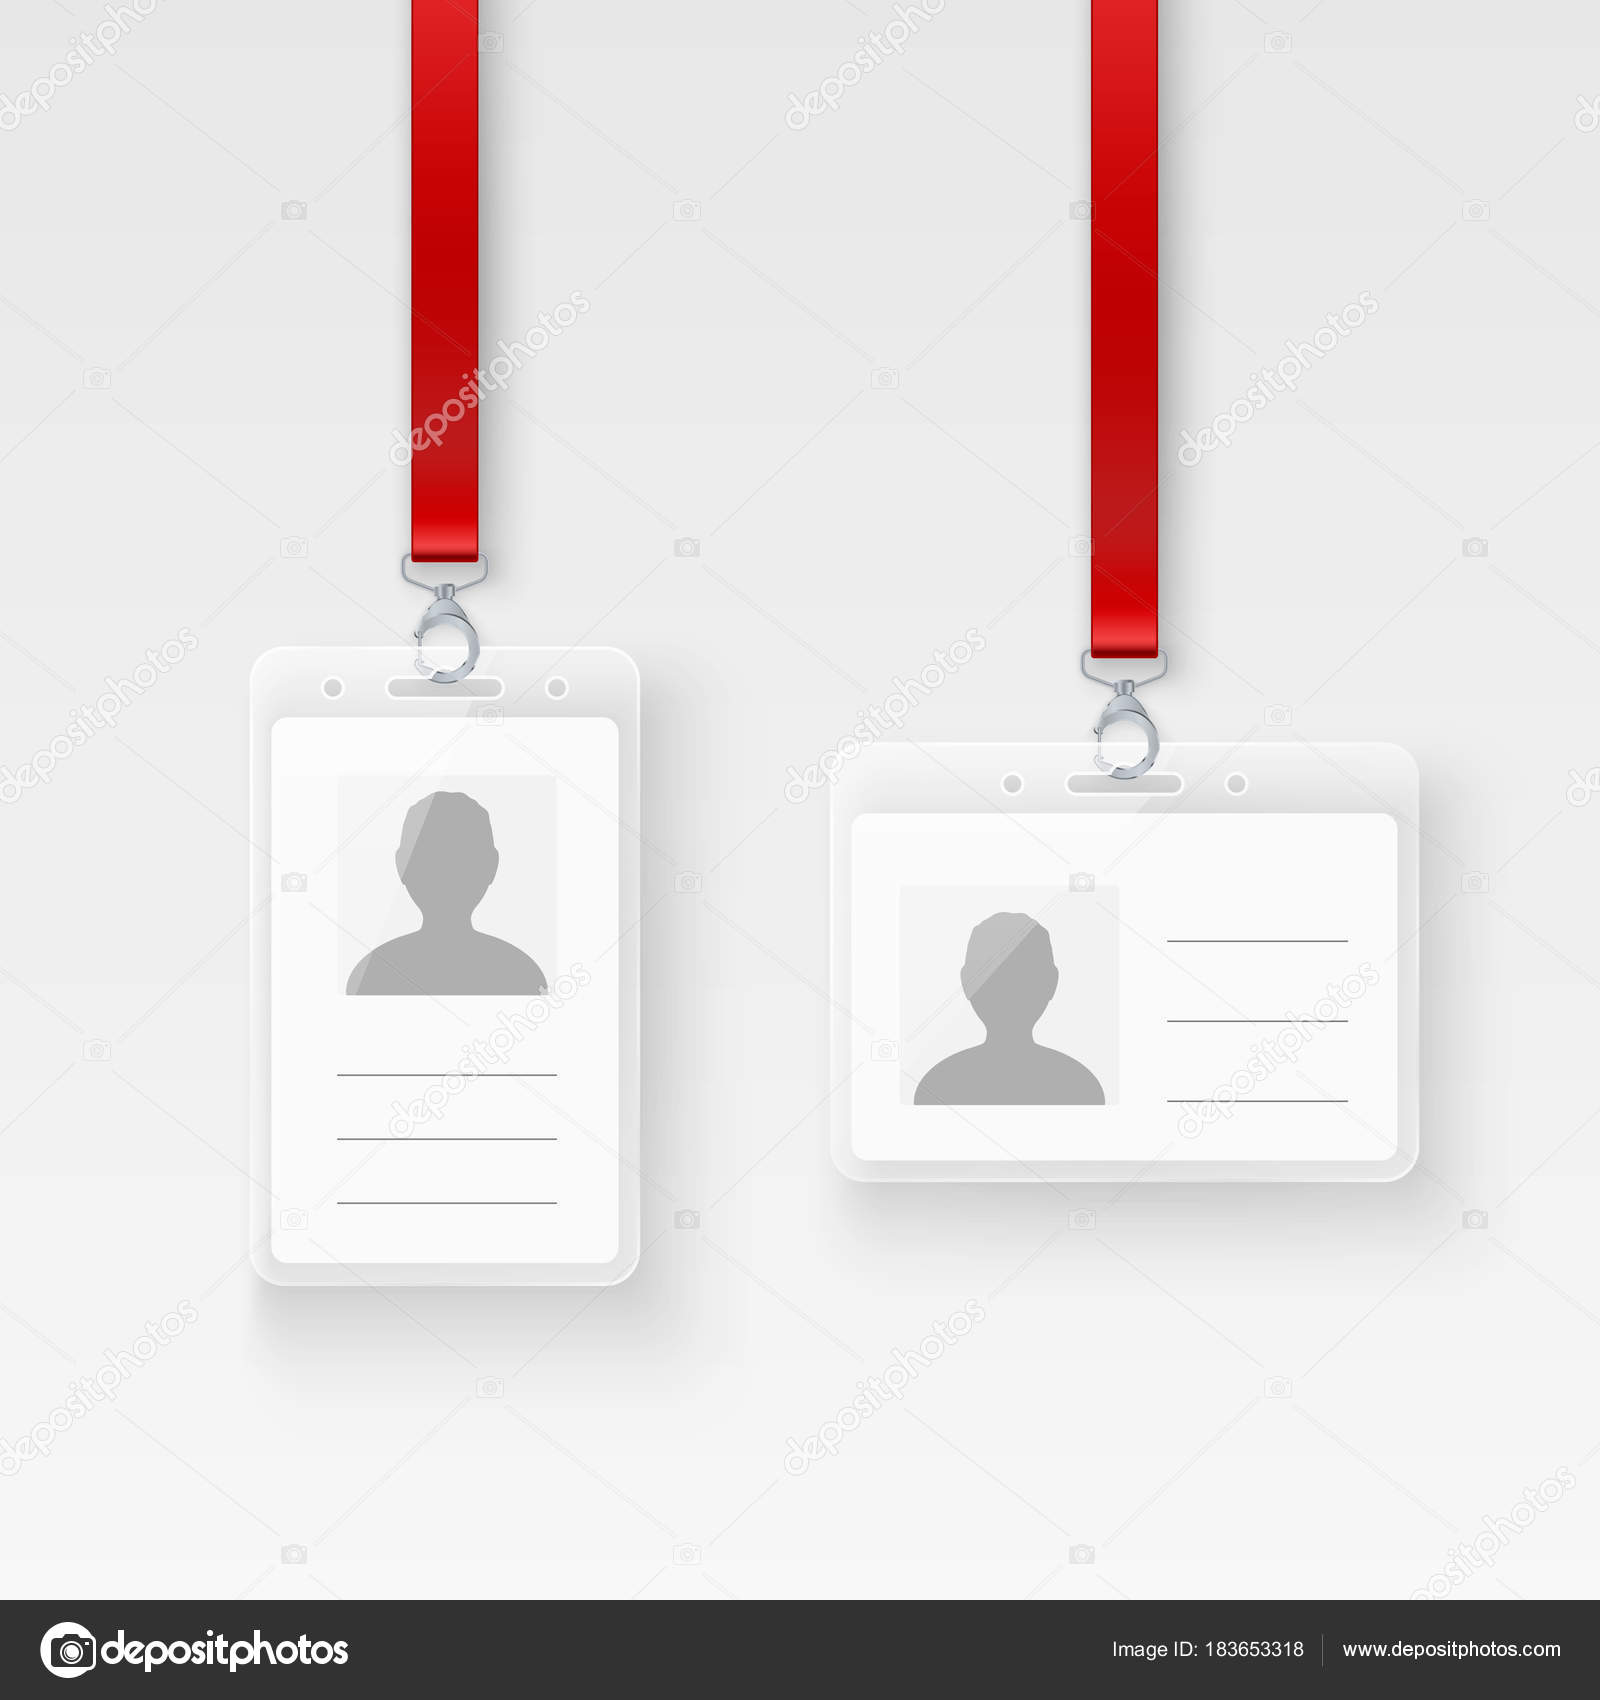 identification personal plastic id card empty id badge design with